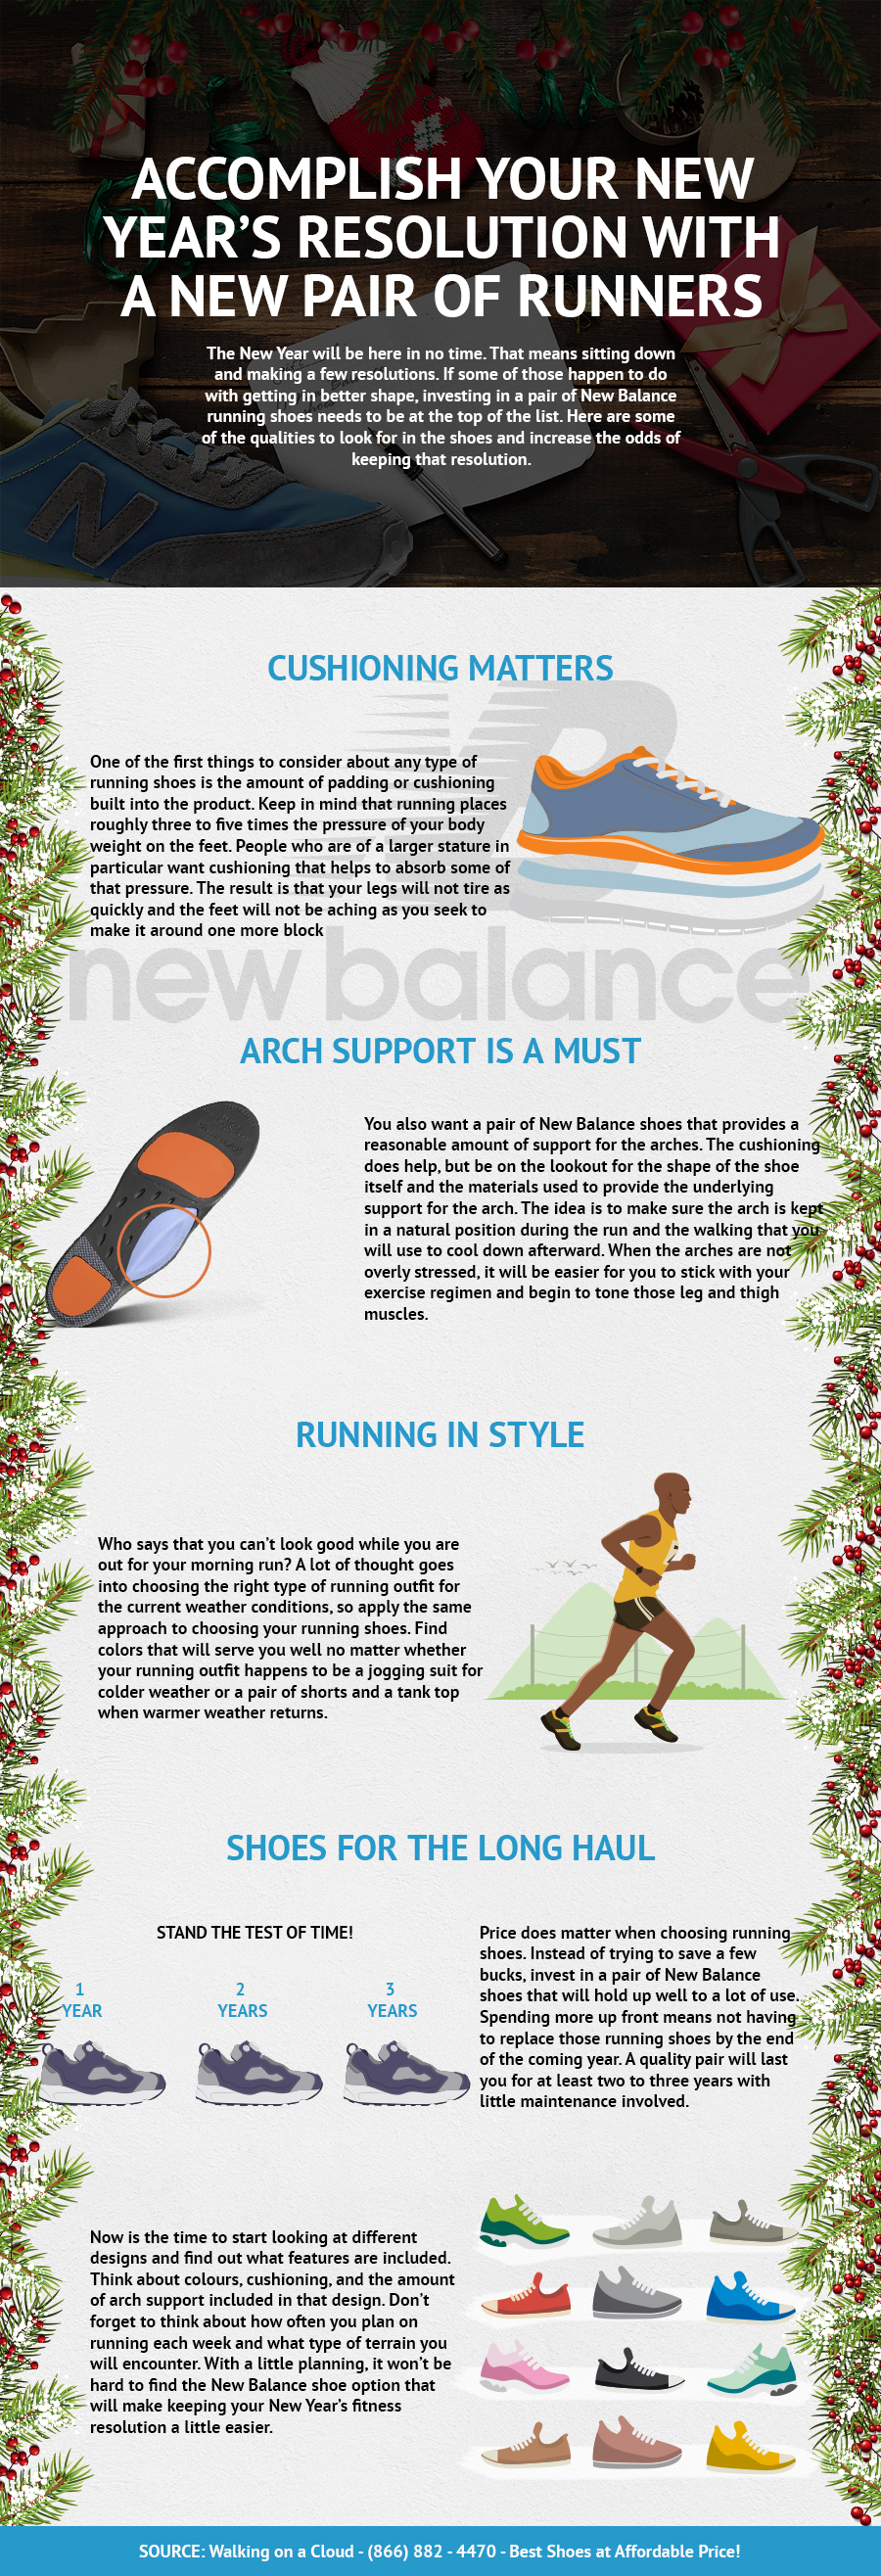 Accomplish-Your-New-Year's-Resolution-with-a-New-Pair-of-Runners